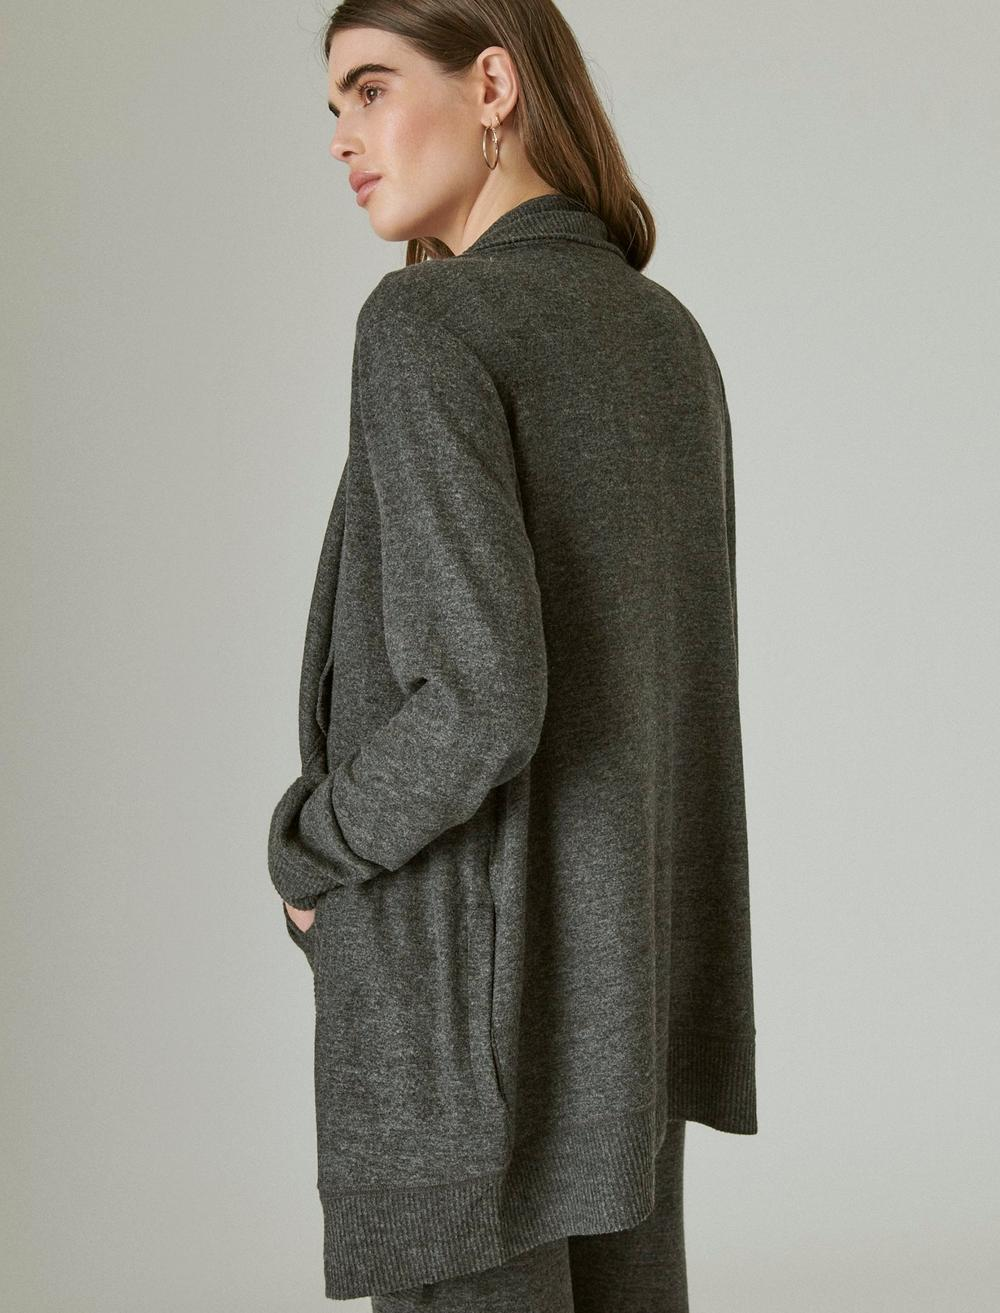 CLOUD JERSEY OPEN FRONT CARDIGAN, image 6